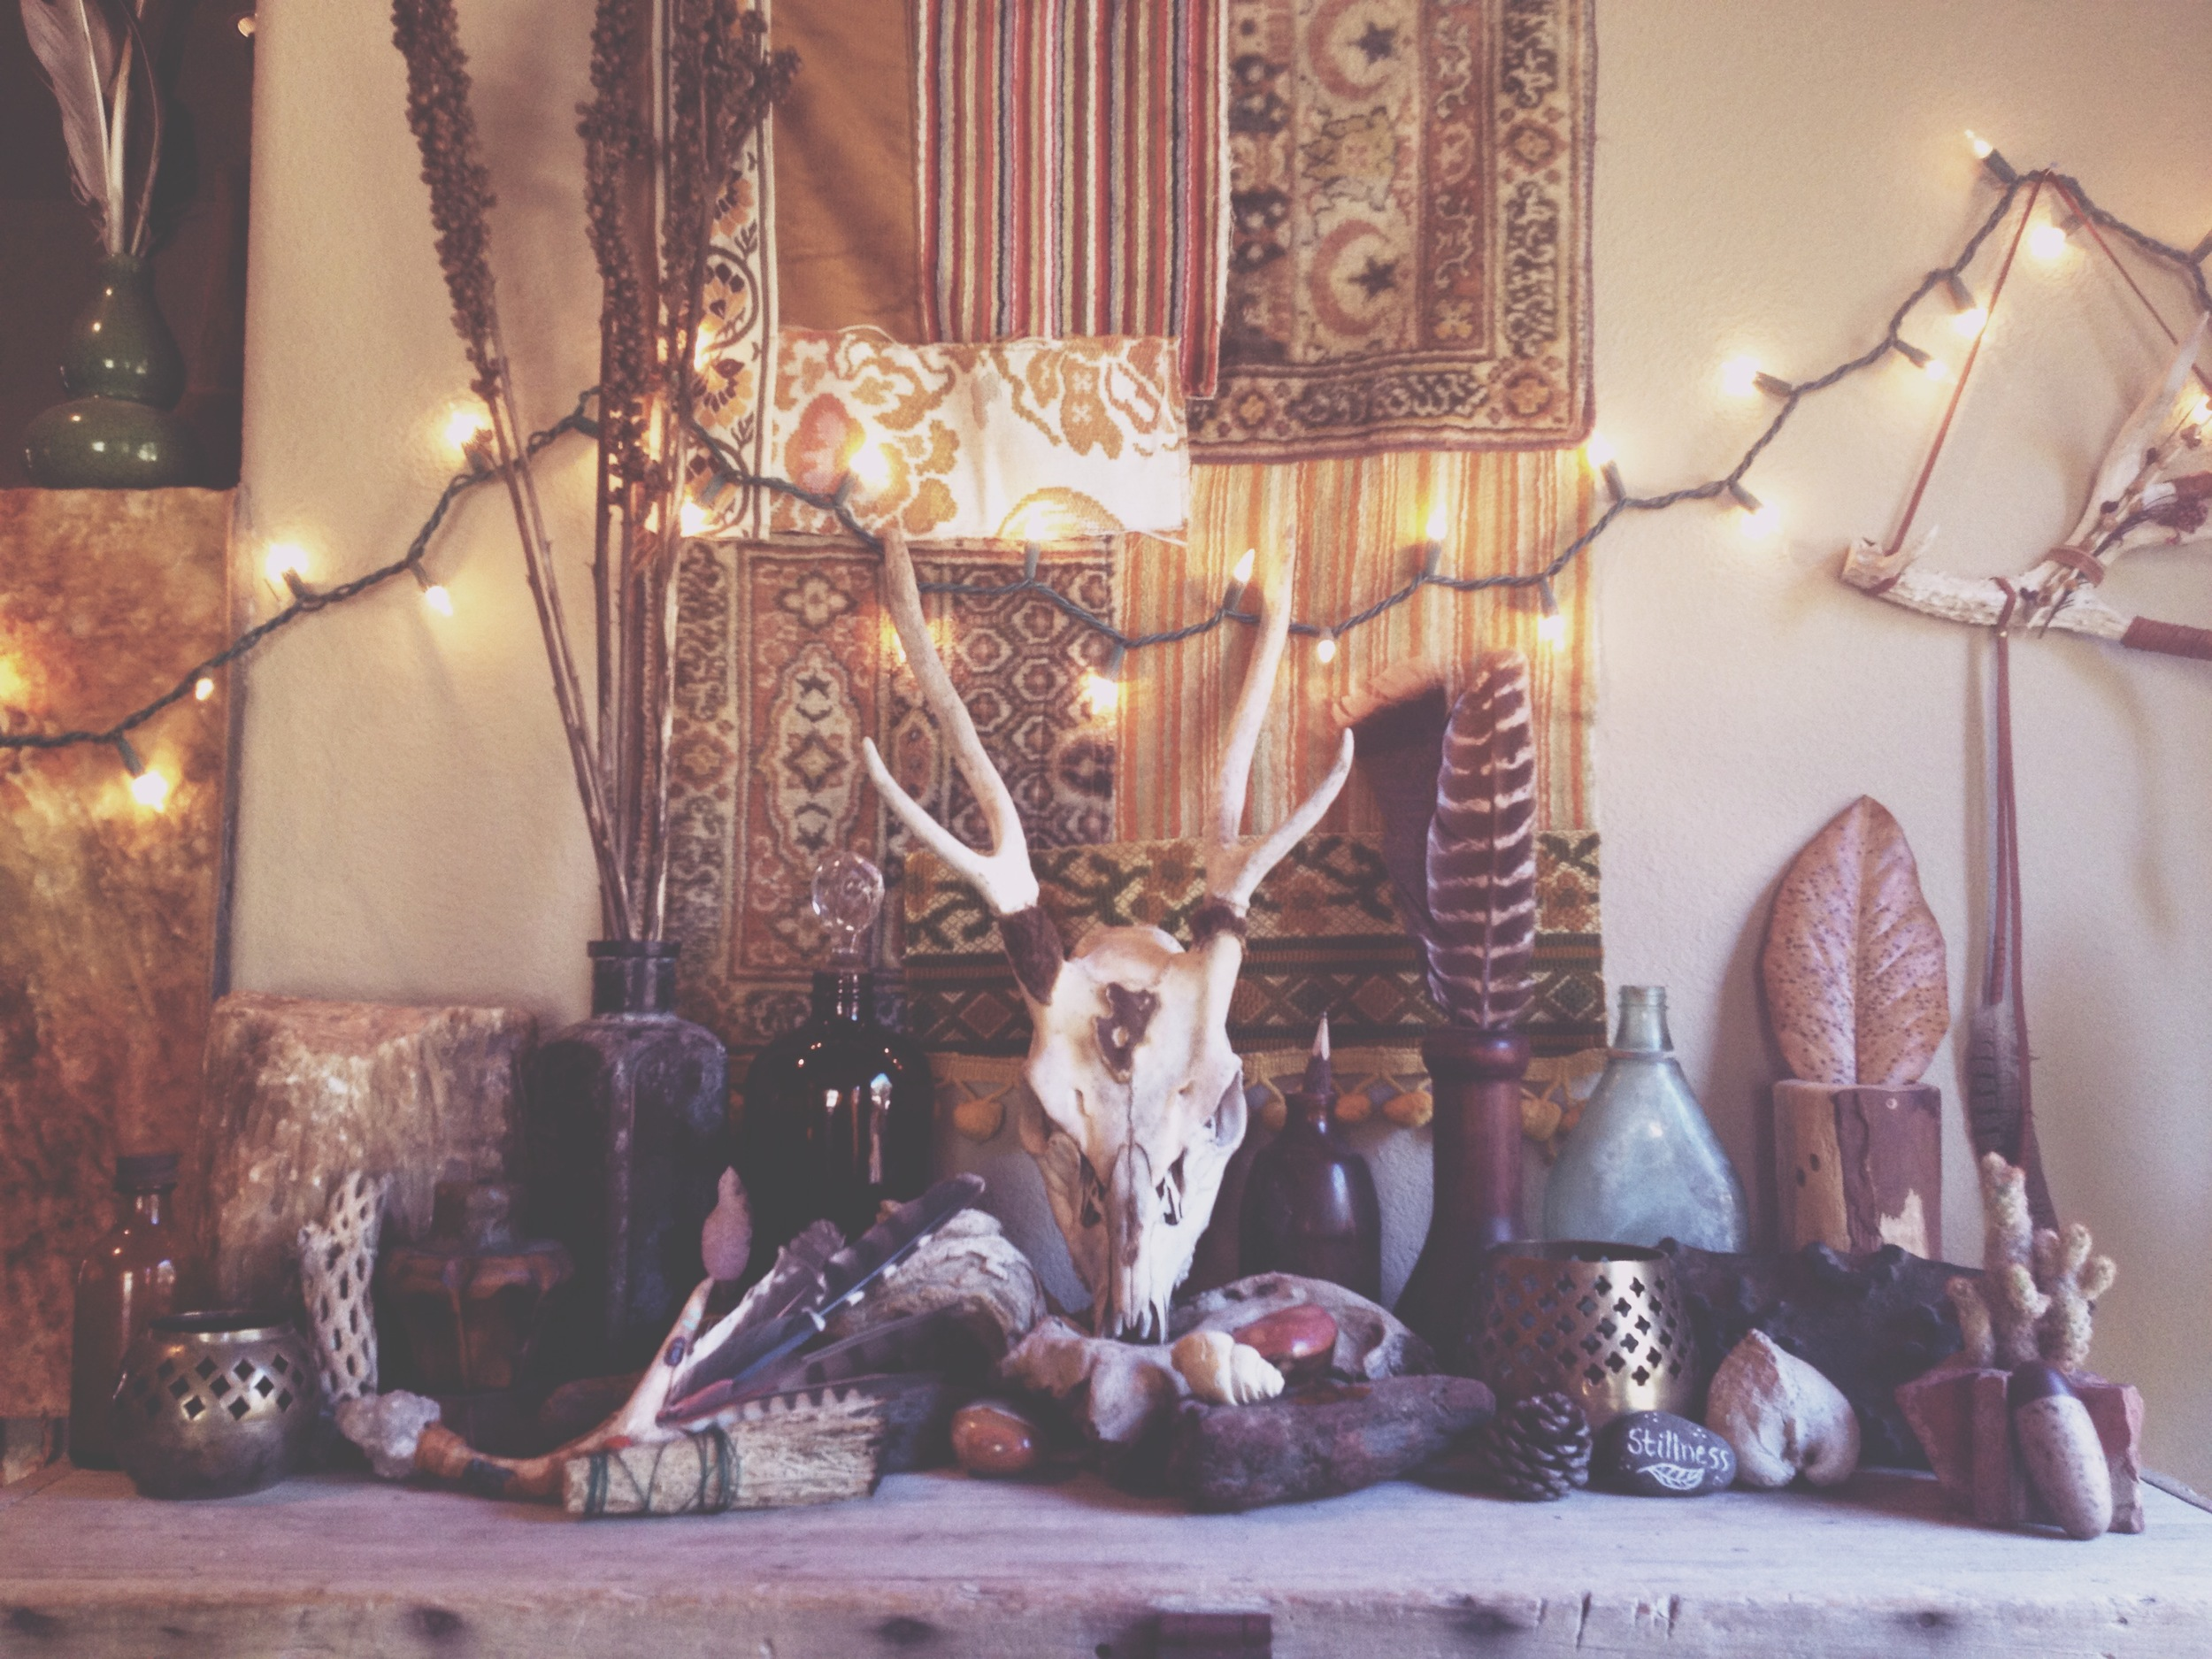 My new autumnal altar. James found me this amazing skull out on my parents property, so I felt it needed a proper place to be loved.